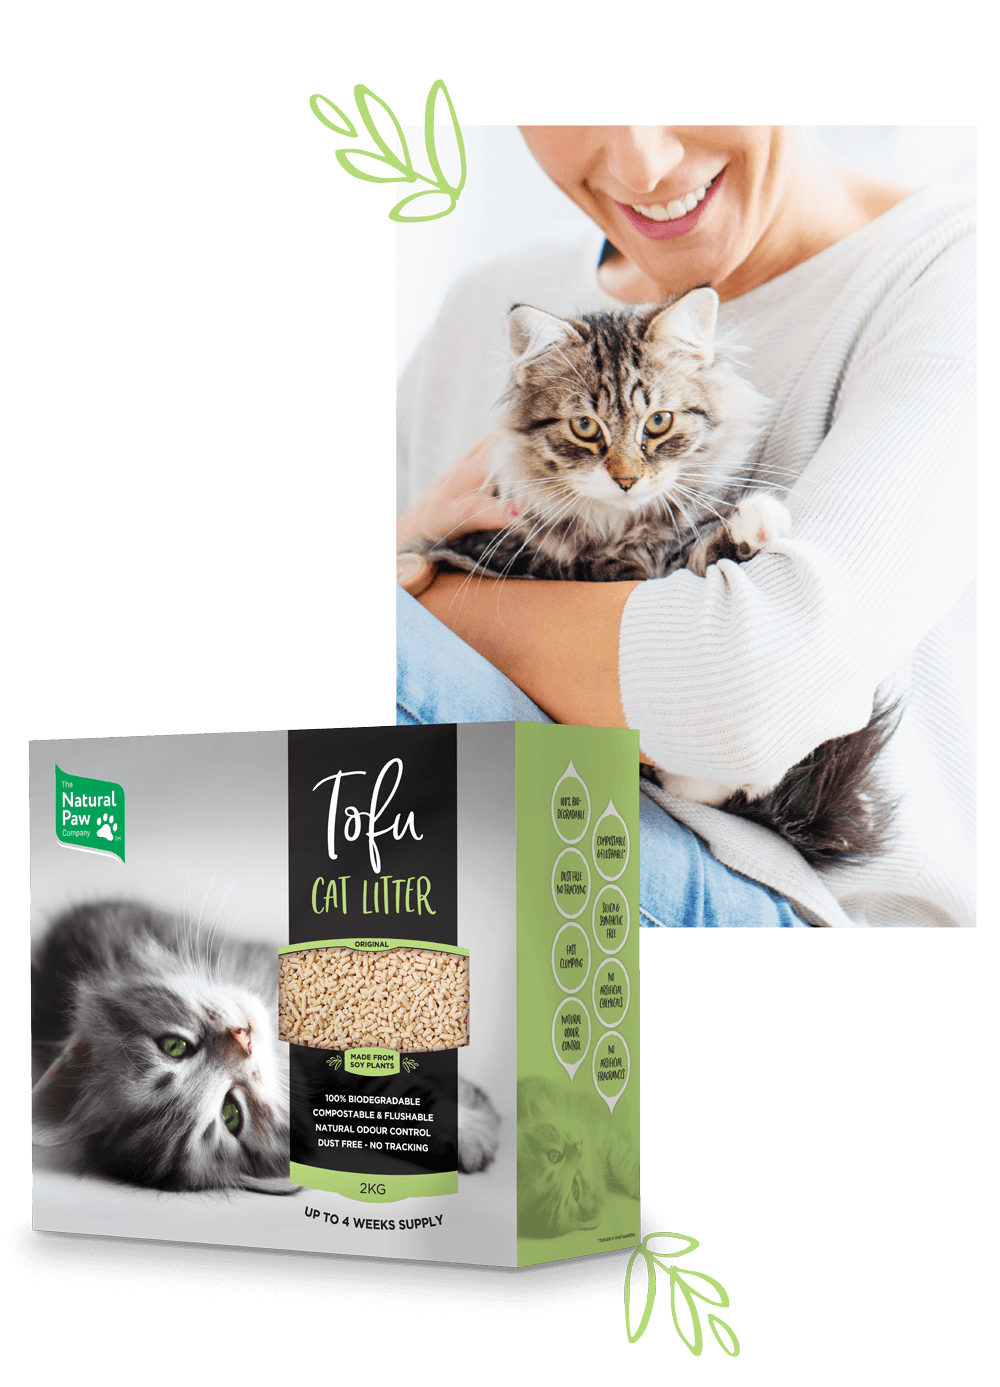 The Natural Paw Company ~ Tofu Cat Litter